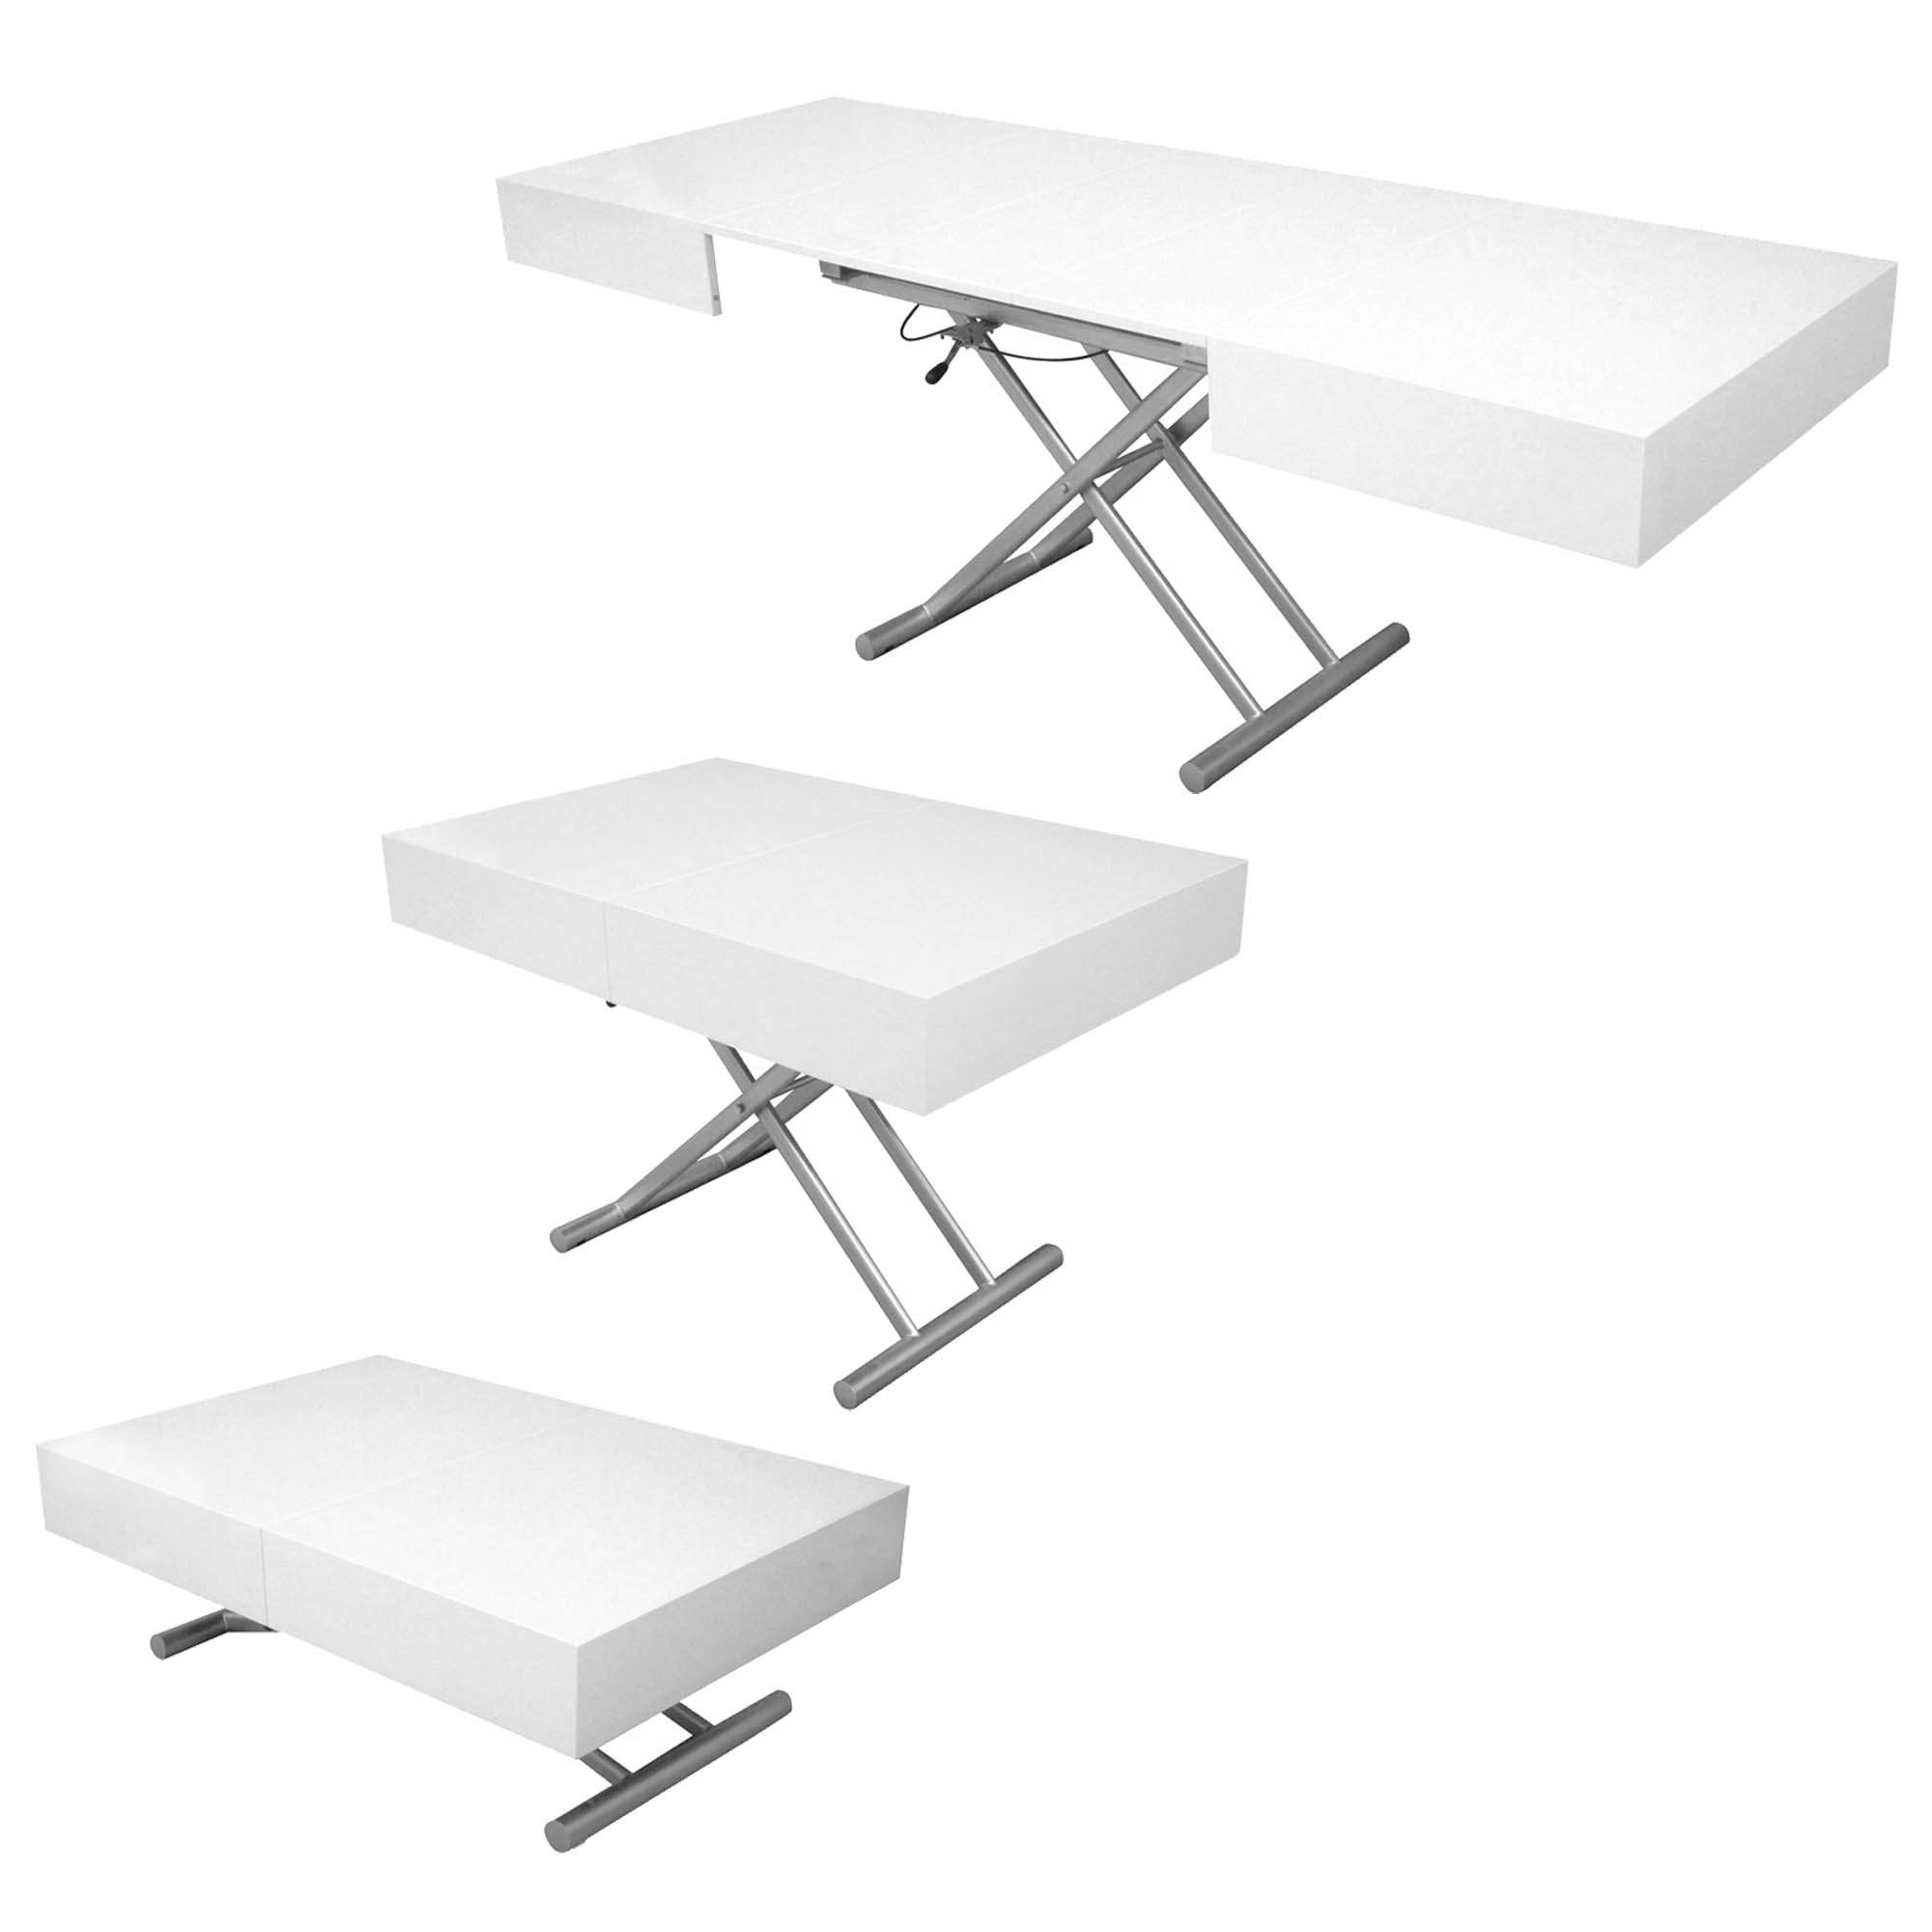 Relevable Extensible Deco Laquee Blanc In Basse Smart Paris Table 54ARjL3